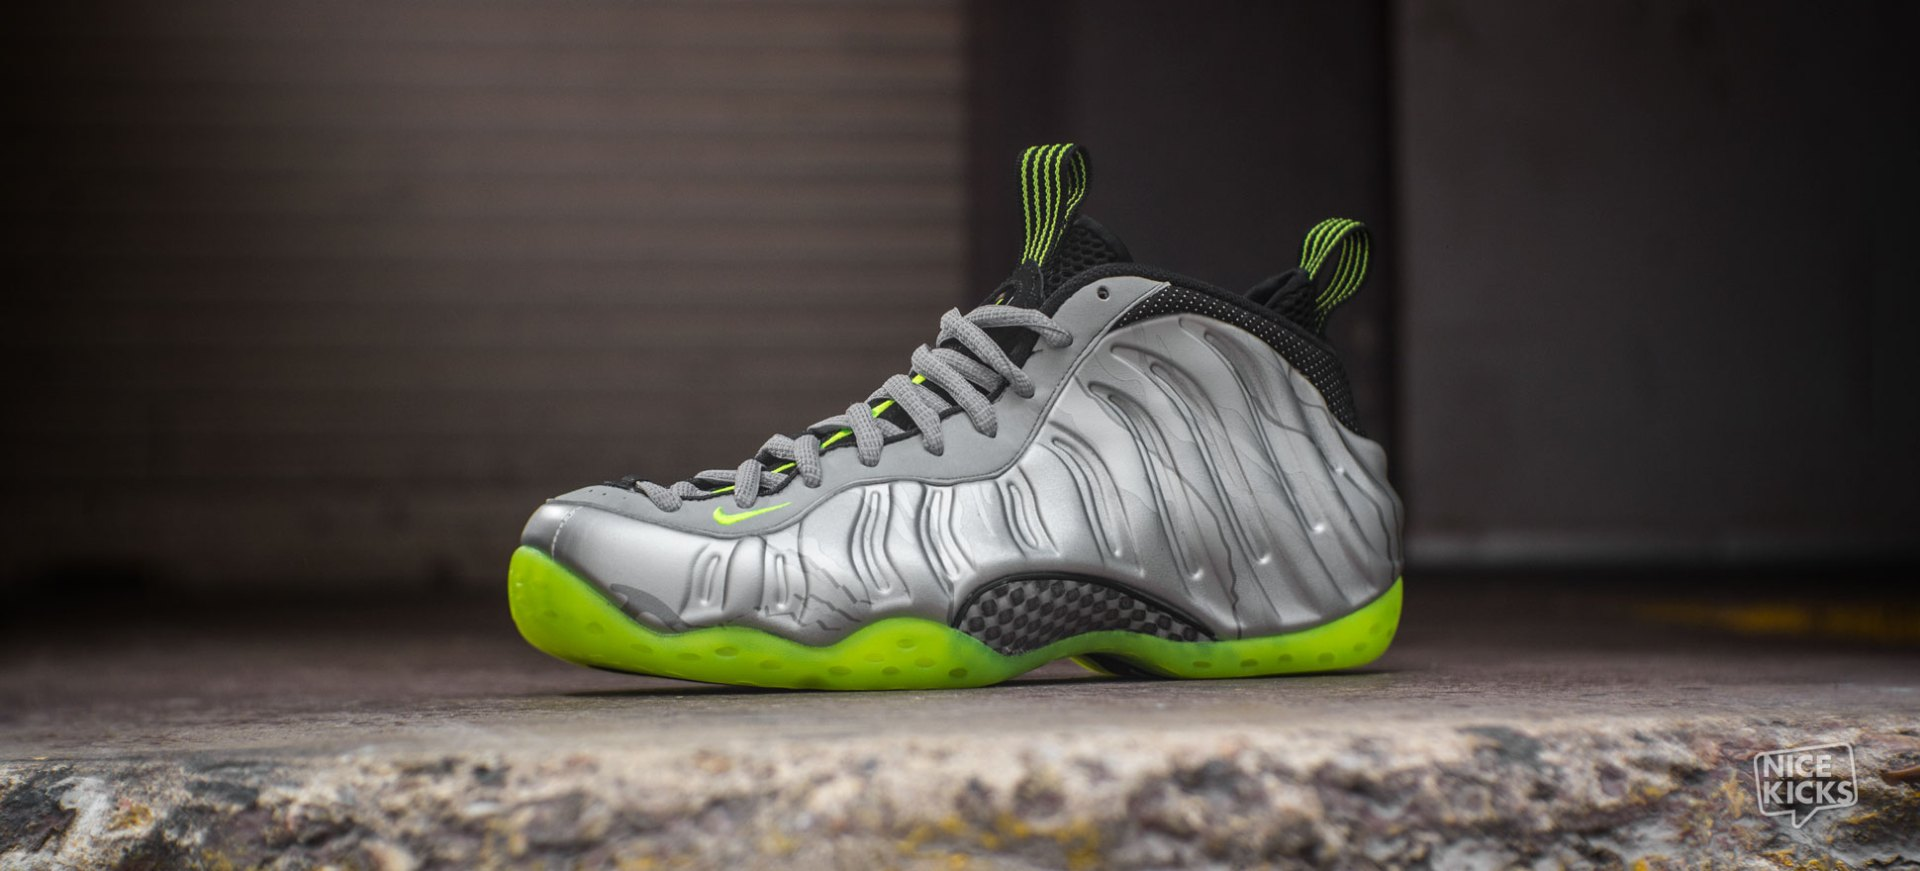 pretty nice 0ec1c 9dd5e Nike Air Foamposite One Metallic Silver/Volt Detailed Images ...